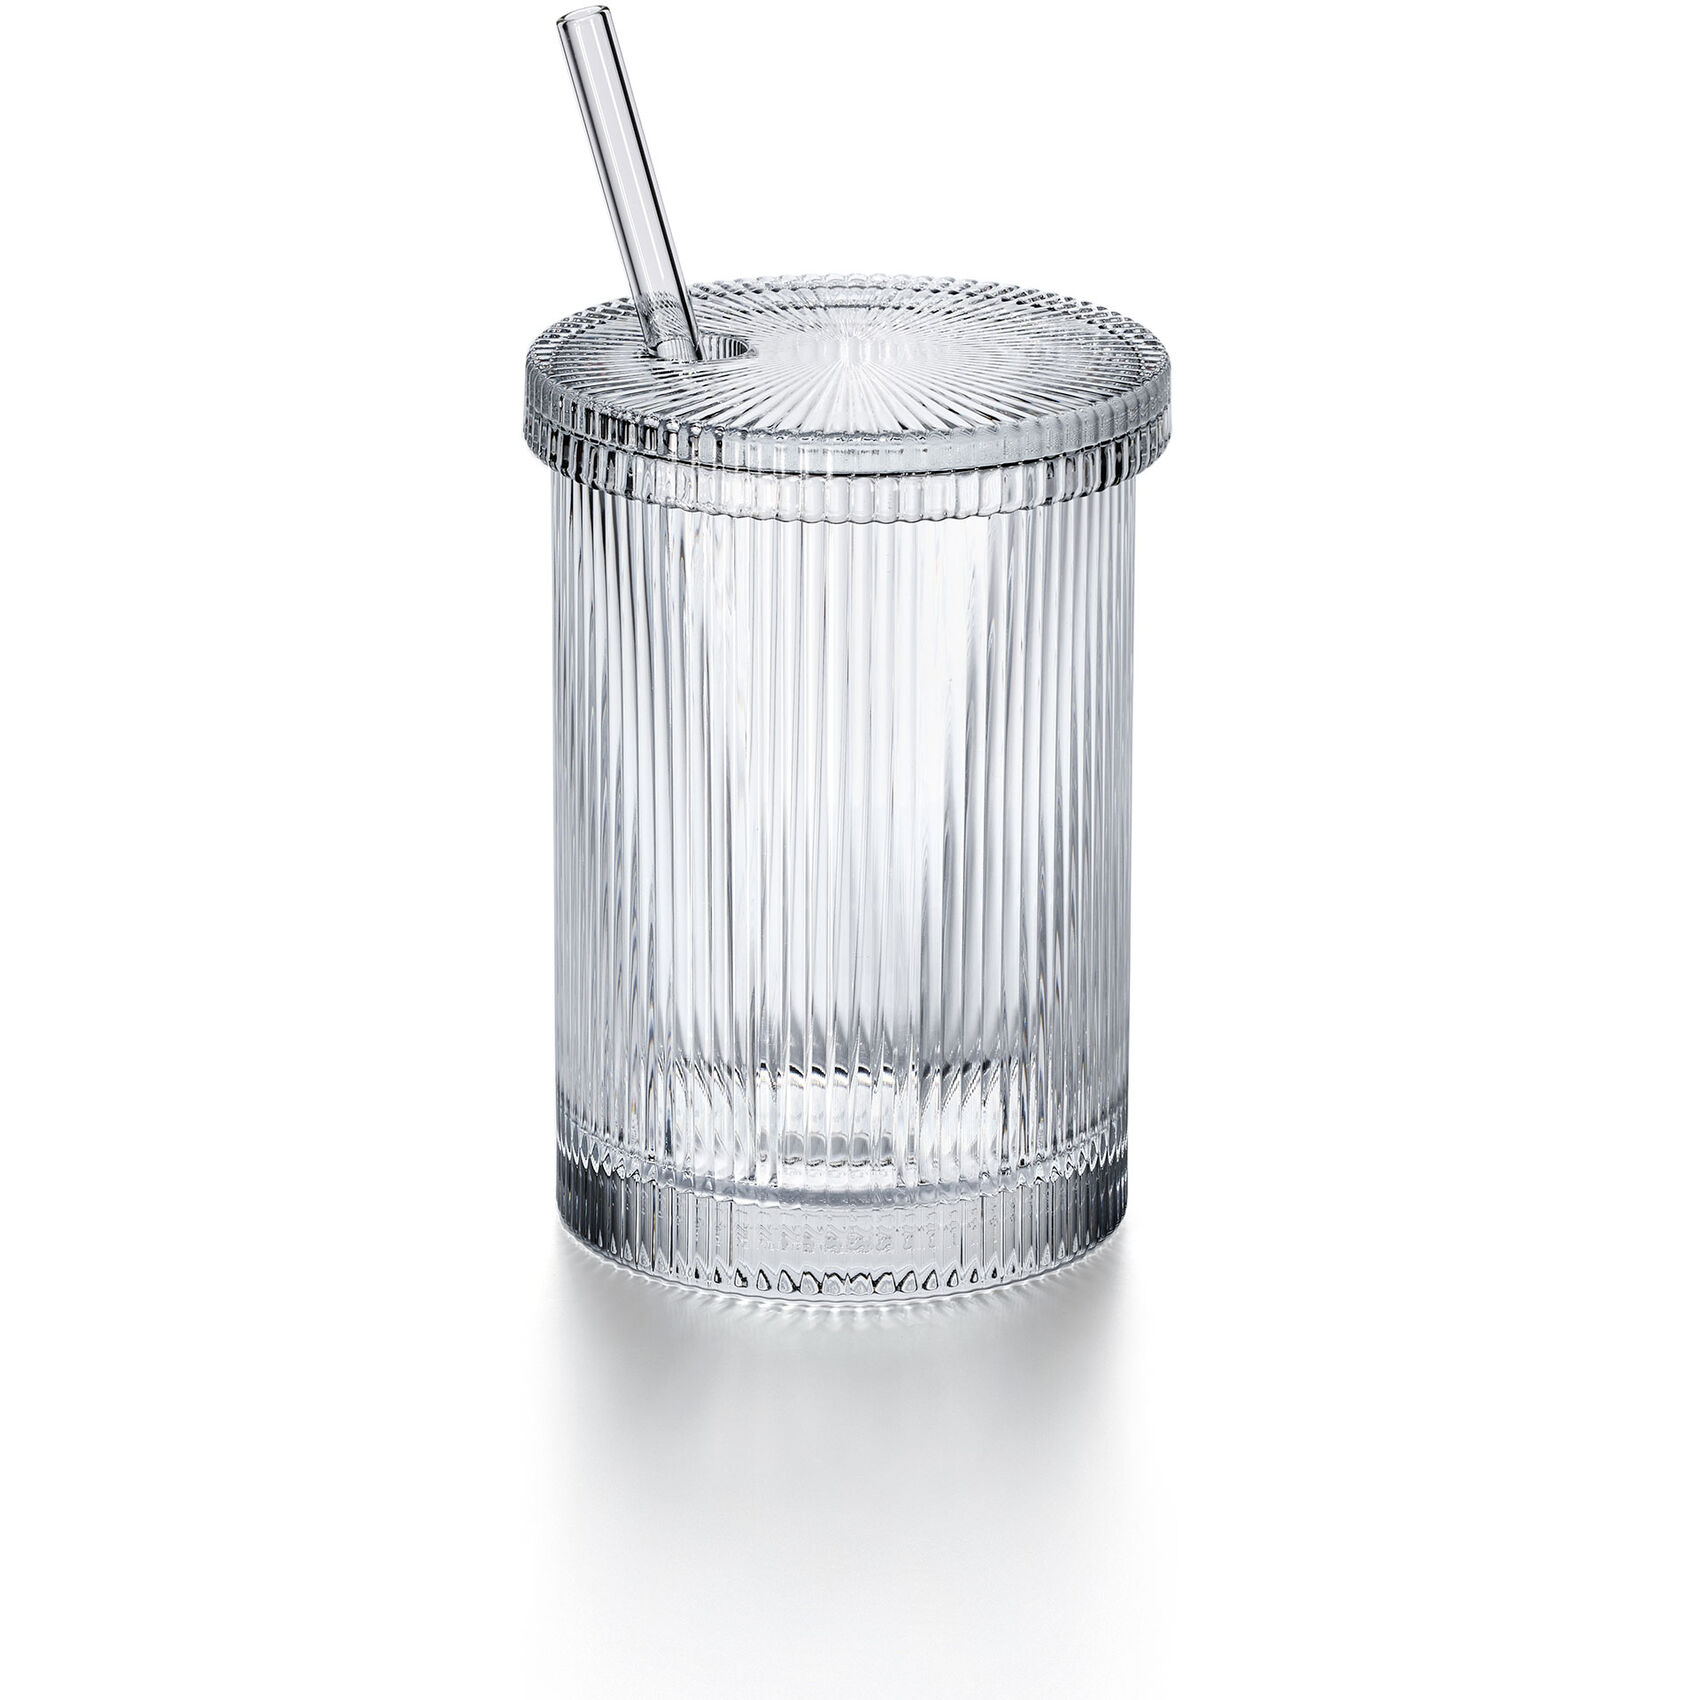 The Crystal Clear Glass By Virgil Abloh X Baccarat